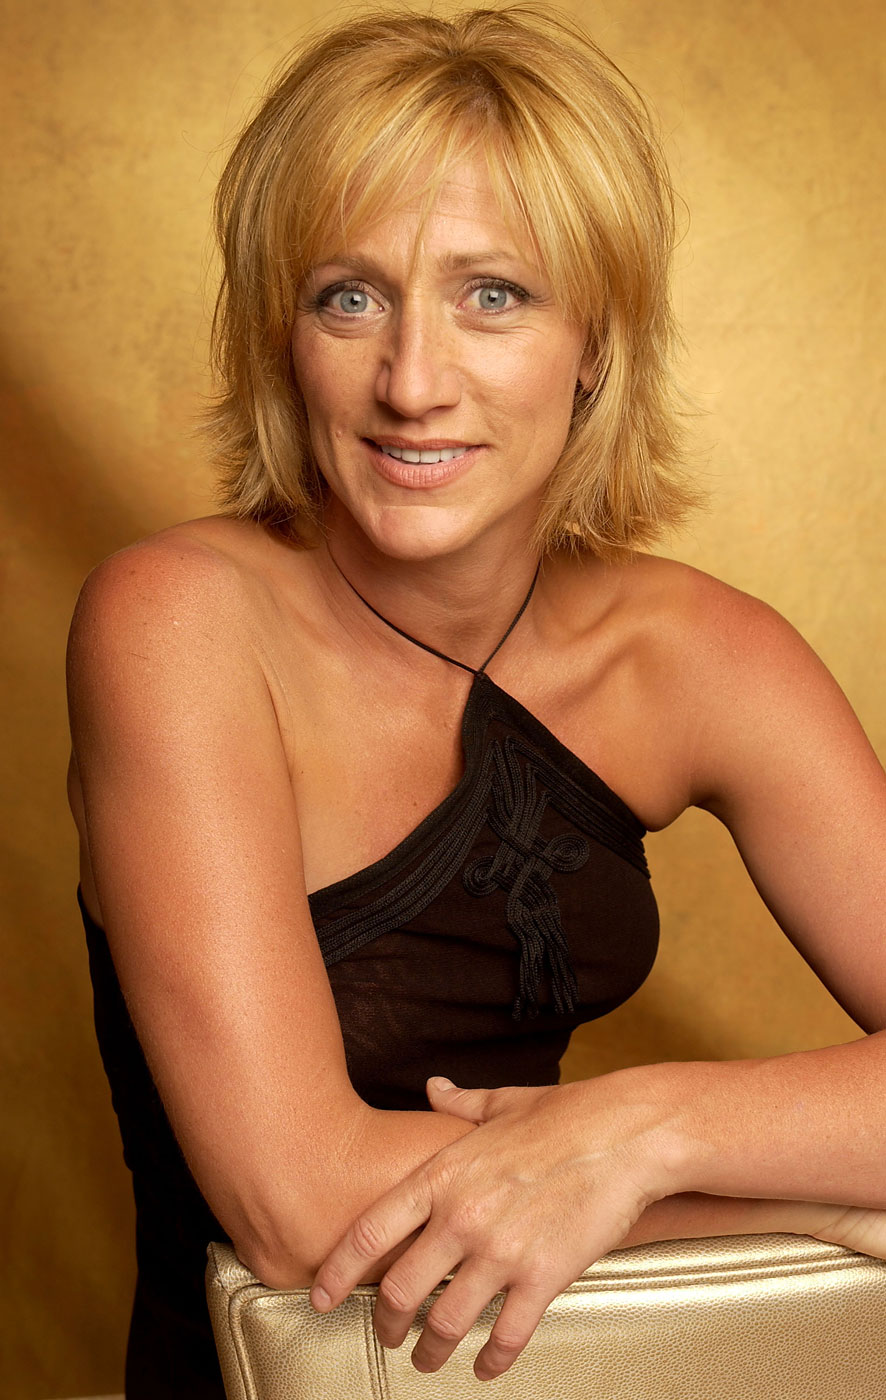 Edie Falco                               Actress and healthcare activist                               Diagnosed with breast cancer in 2003